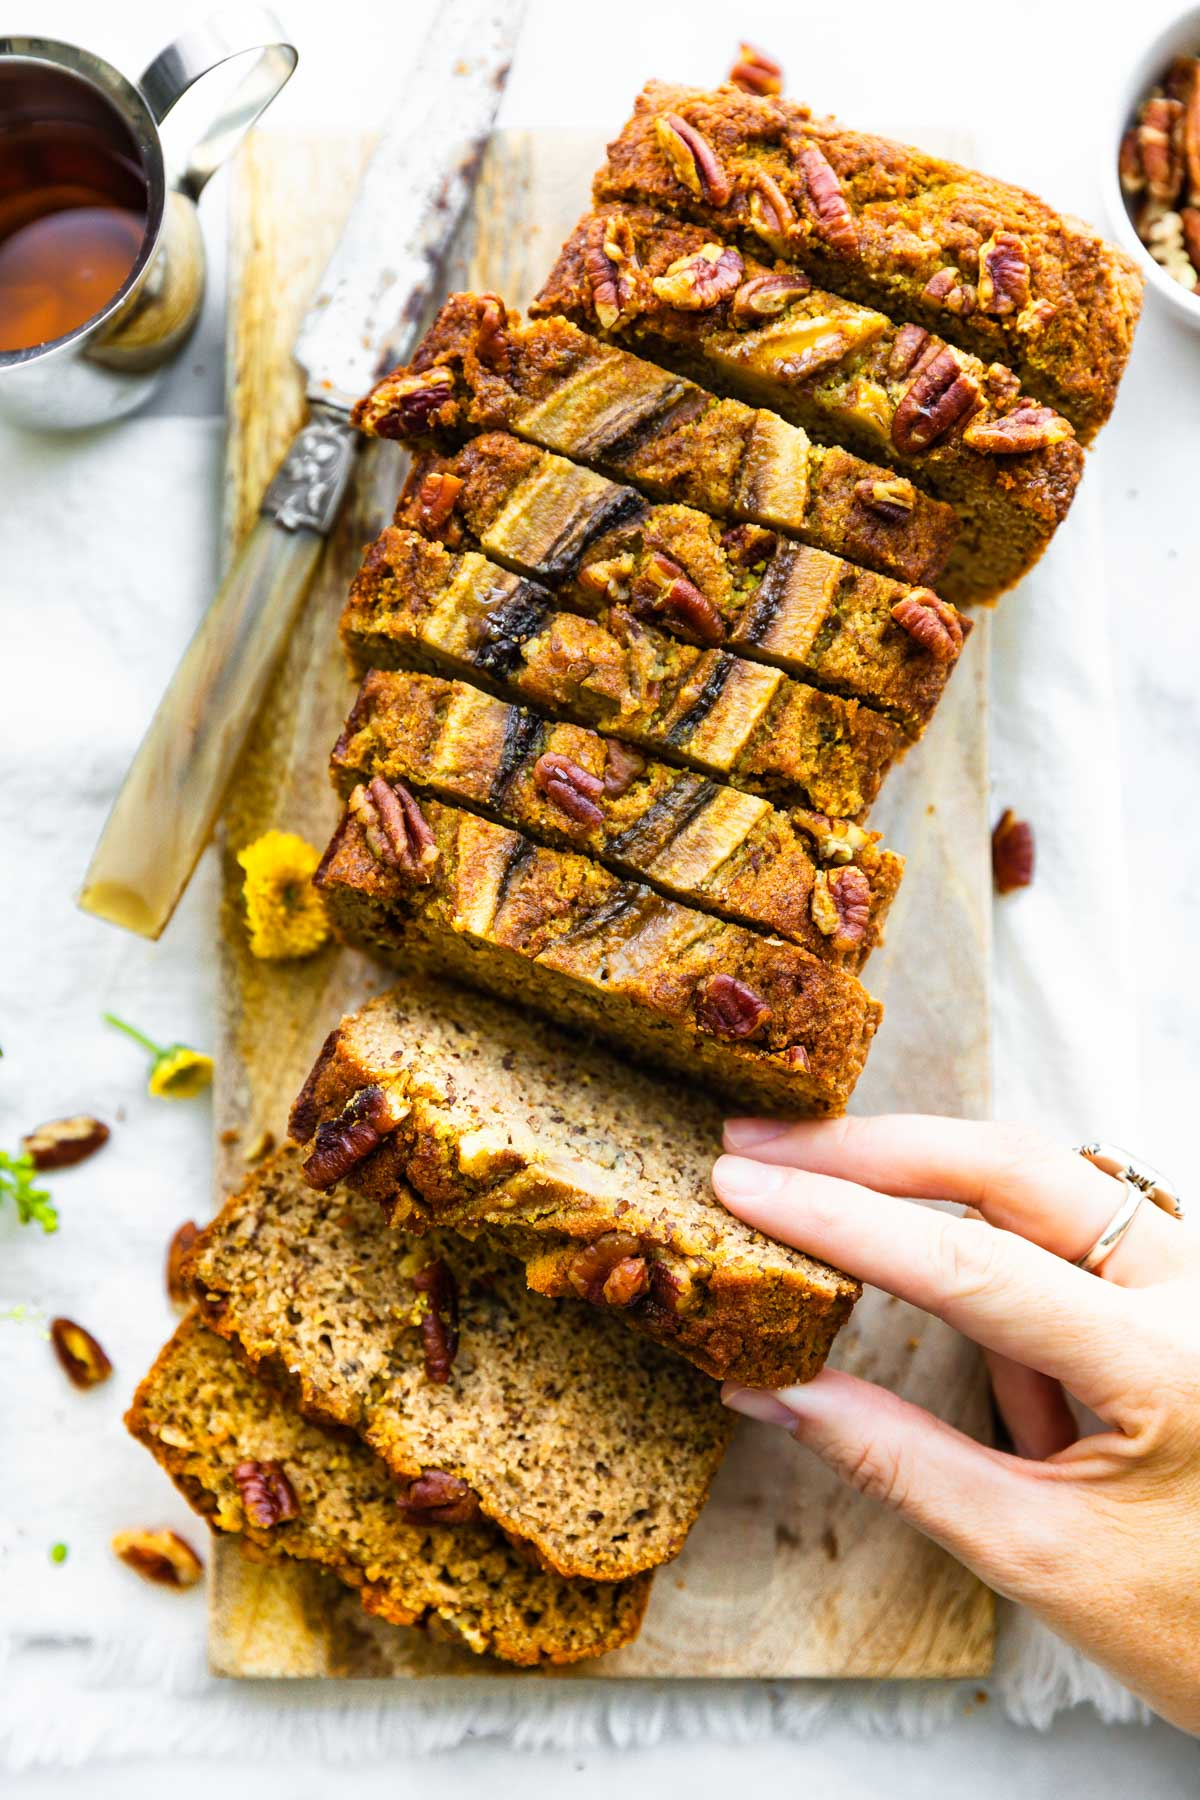 woman pulling slice of healthy banana nut bread from sliced loaf on wooden tray